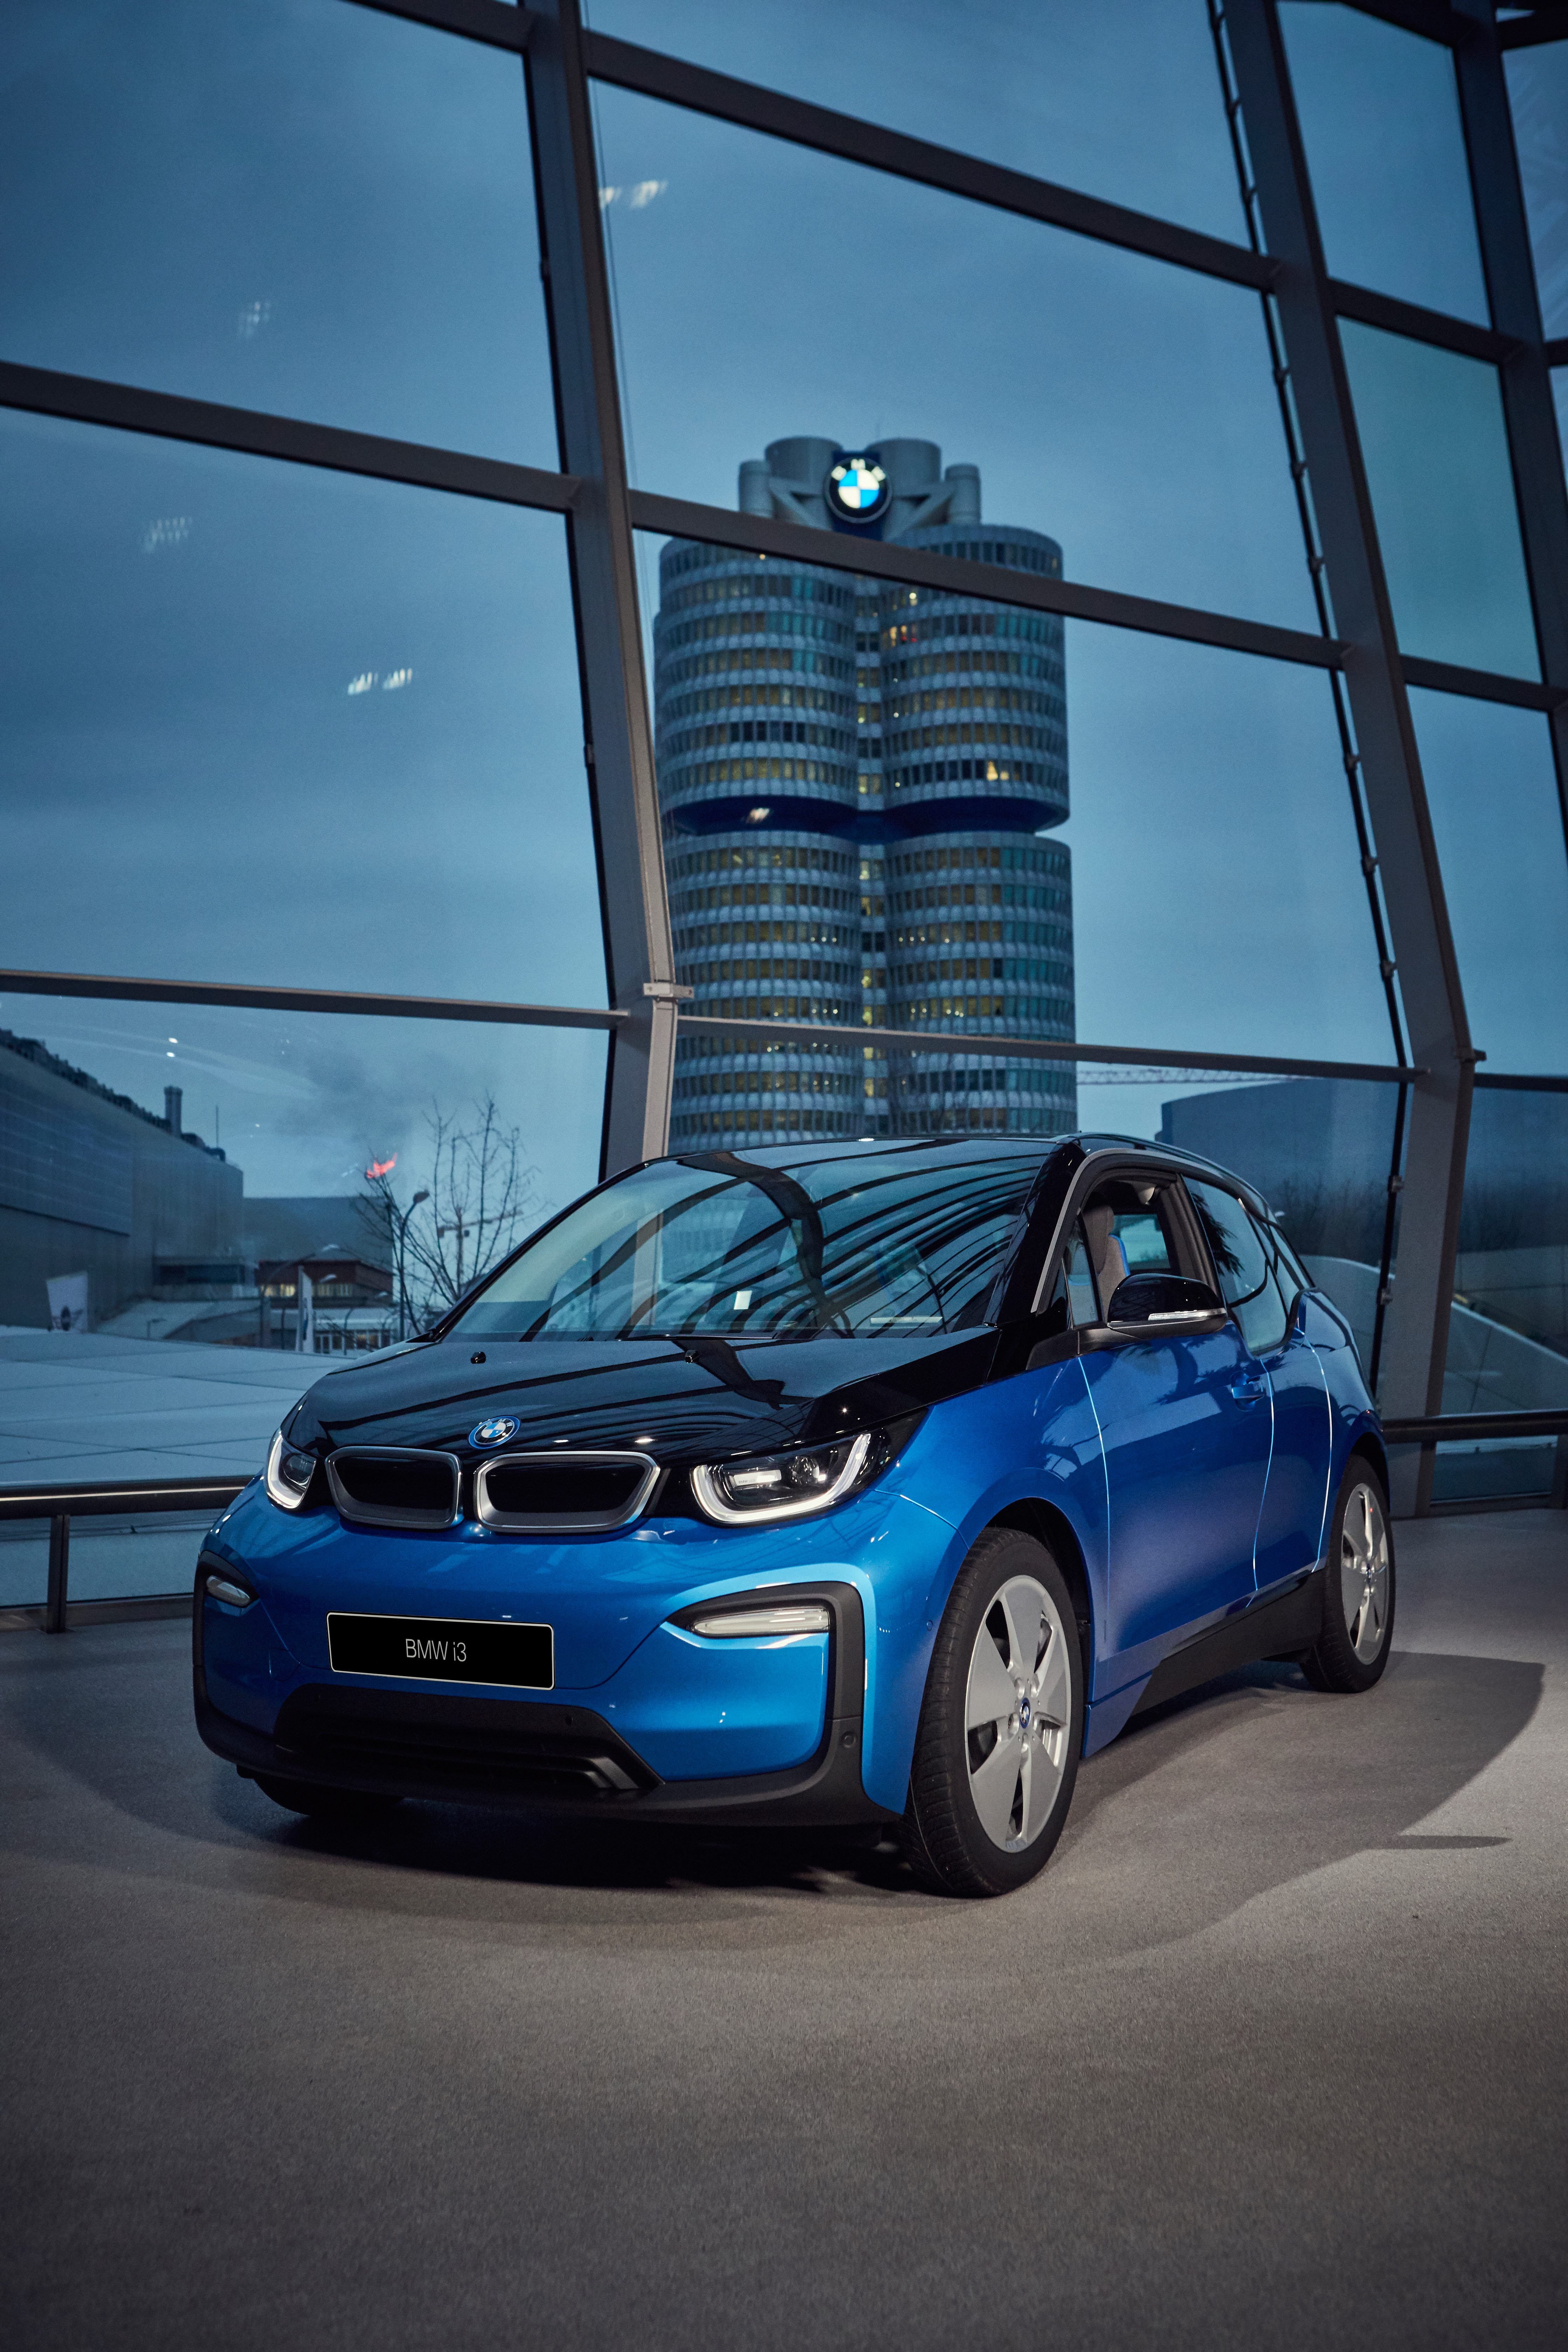 Bmw Turns Its Hq Into Giant Batteries As It Delivers Its 100 000th